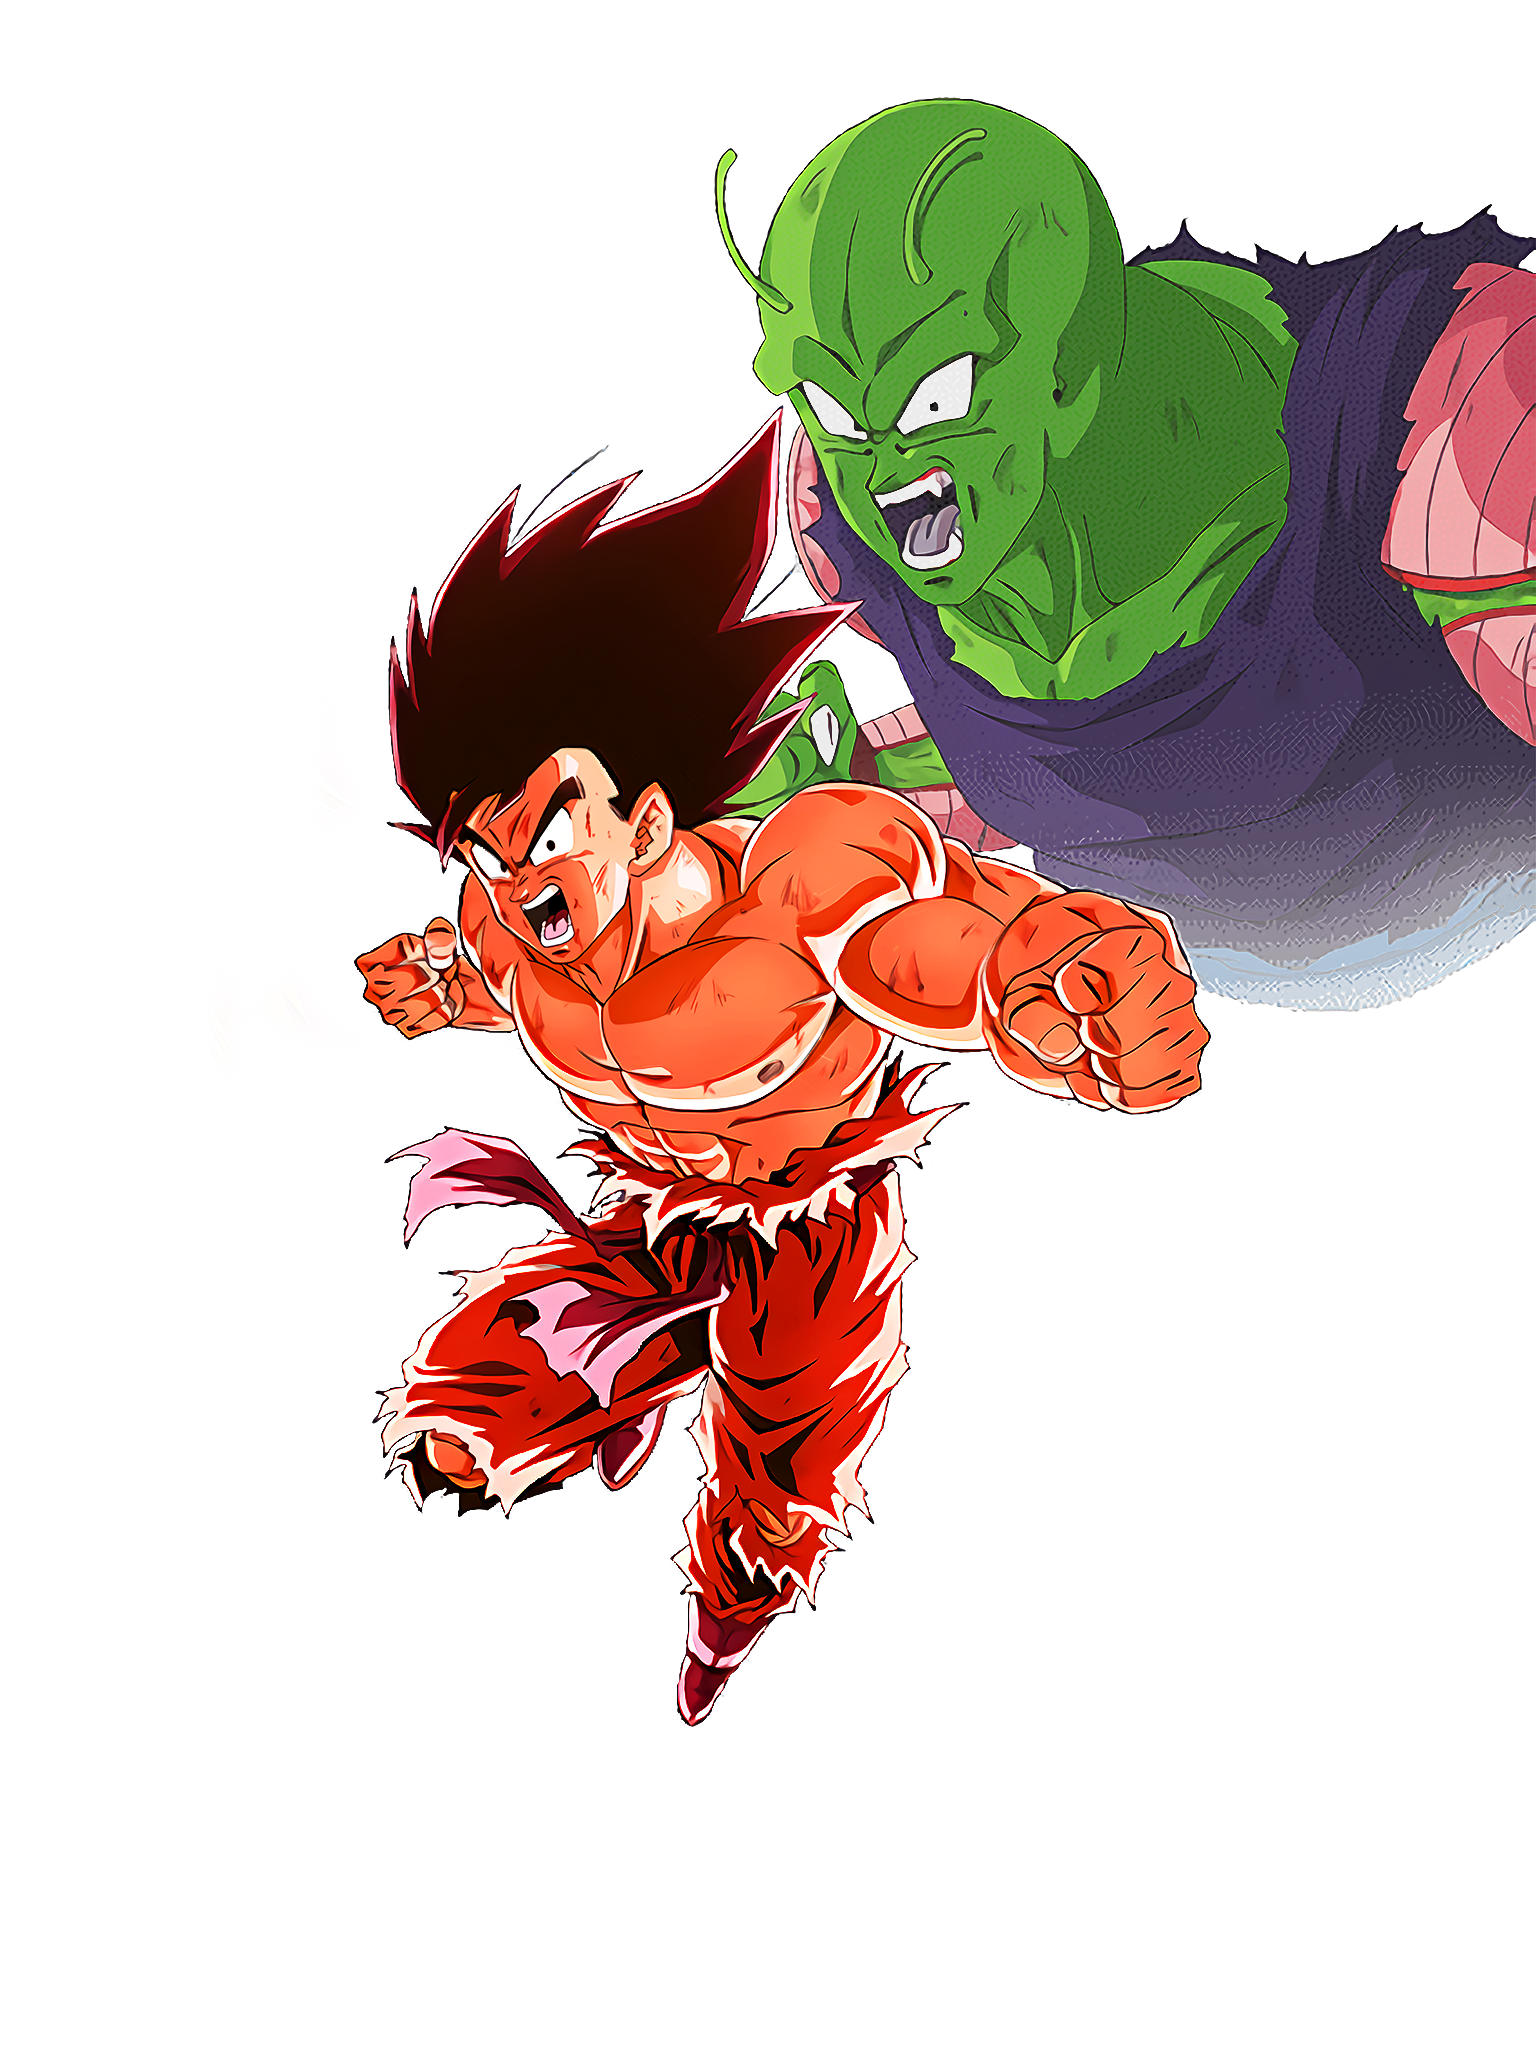 Otherworld Combination of Union Power Goku Kaioken Render (Dragon Ball Z Dokkan Battle) .png